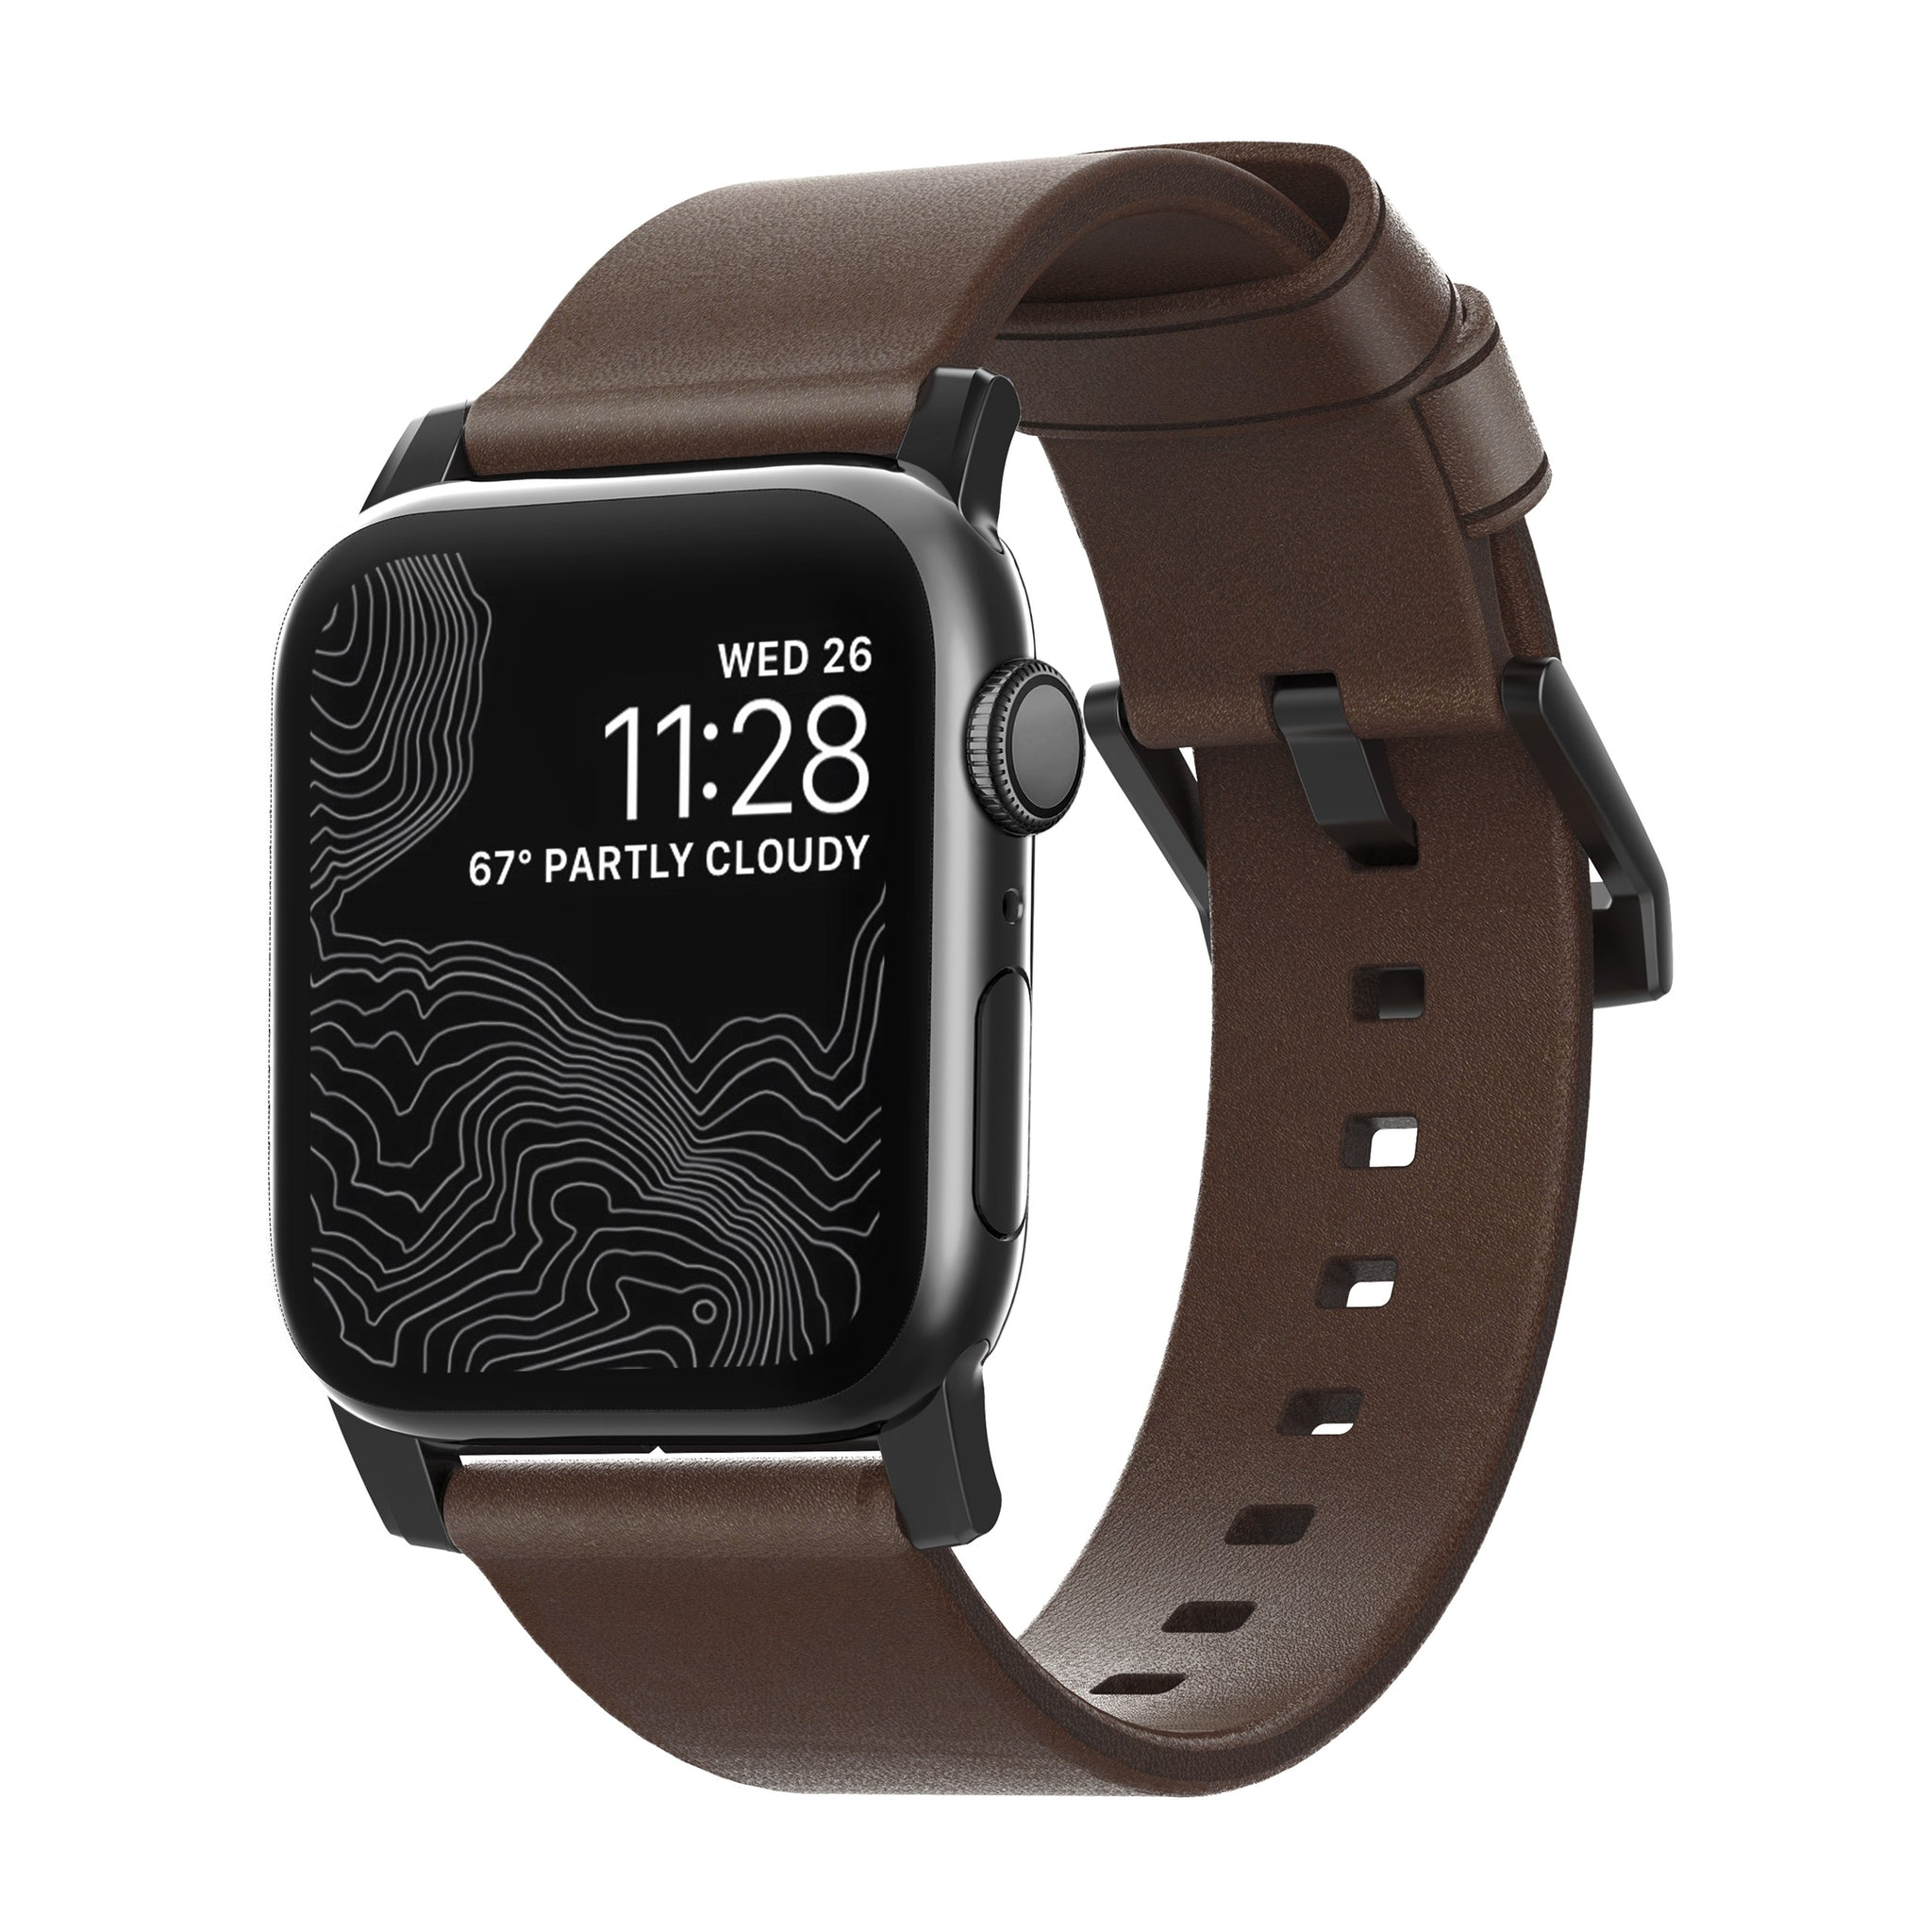 Nomad Modern Leather Strap for Apple Watch - Rustic Brown / Black Hardware